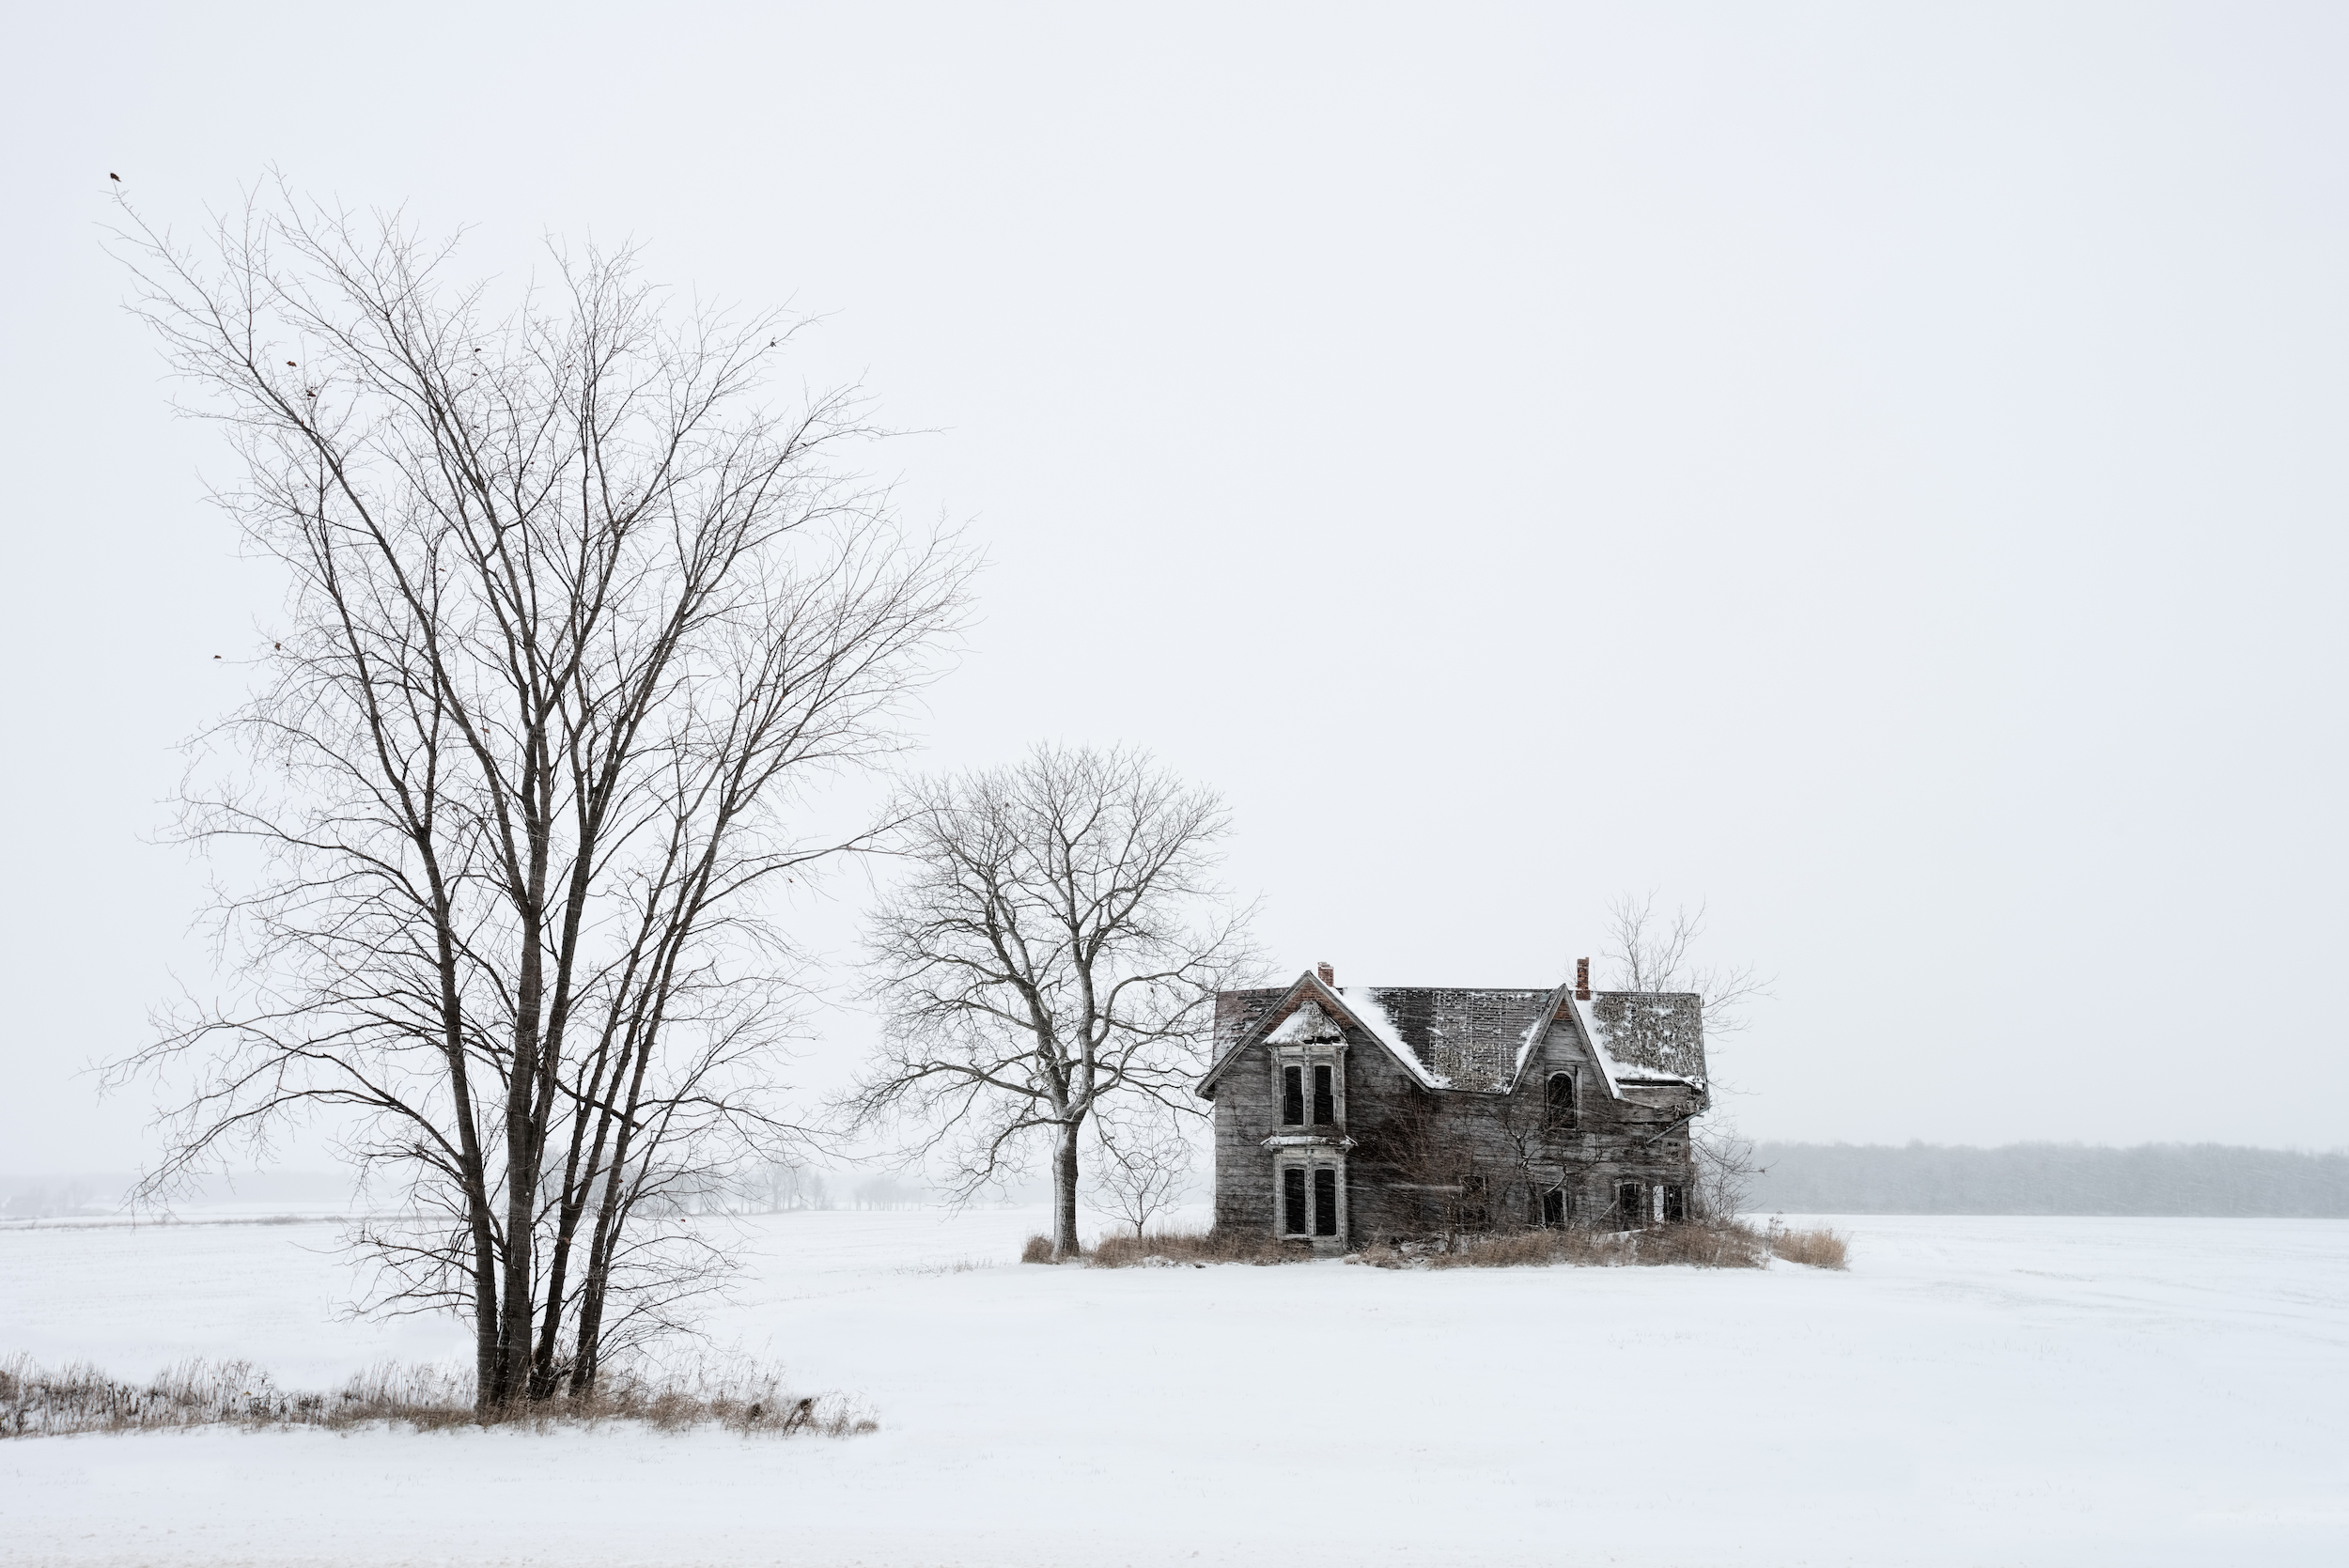 Winter scene of an abandoned farmhouse in Muirkirk, Ontario, Canada